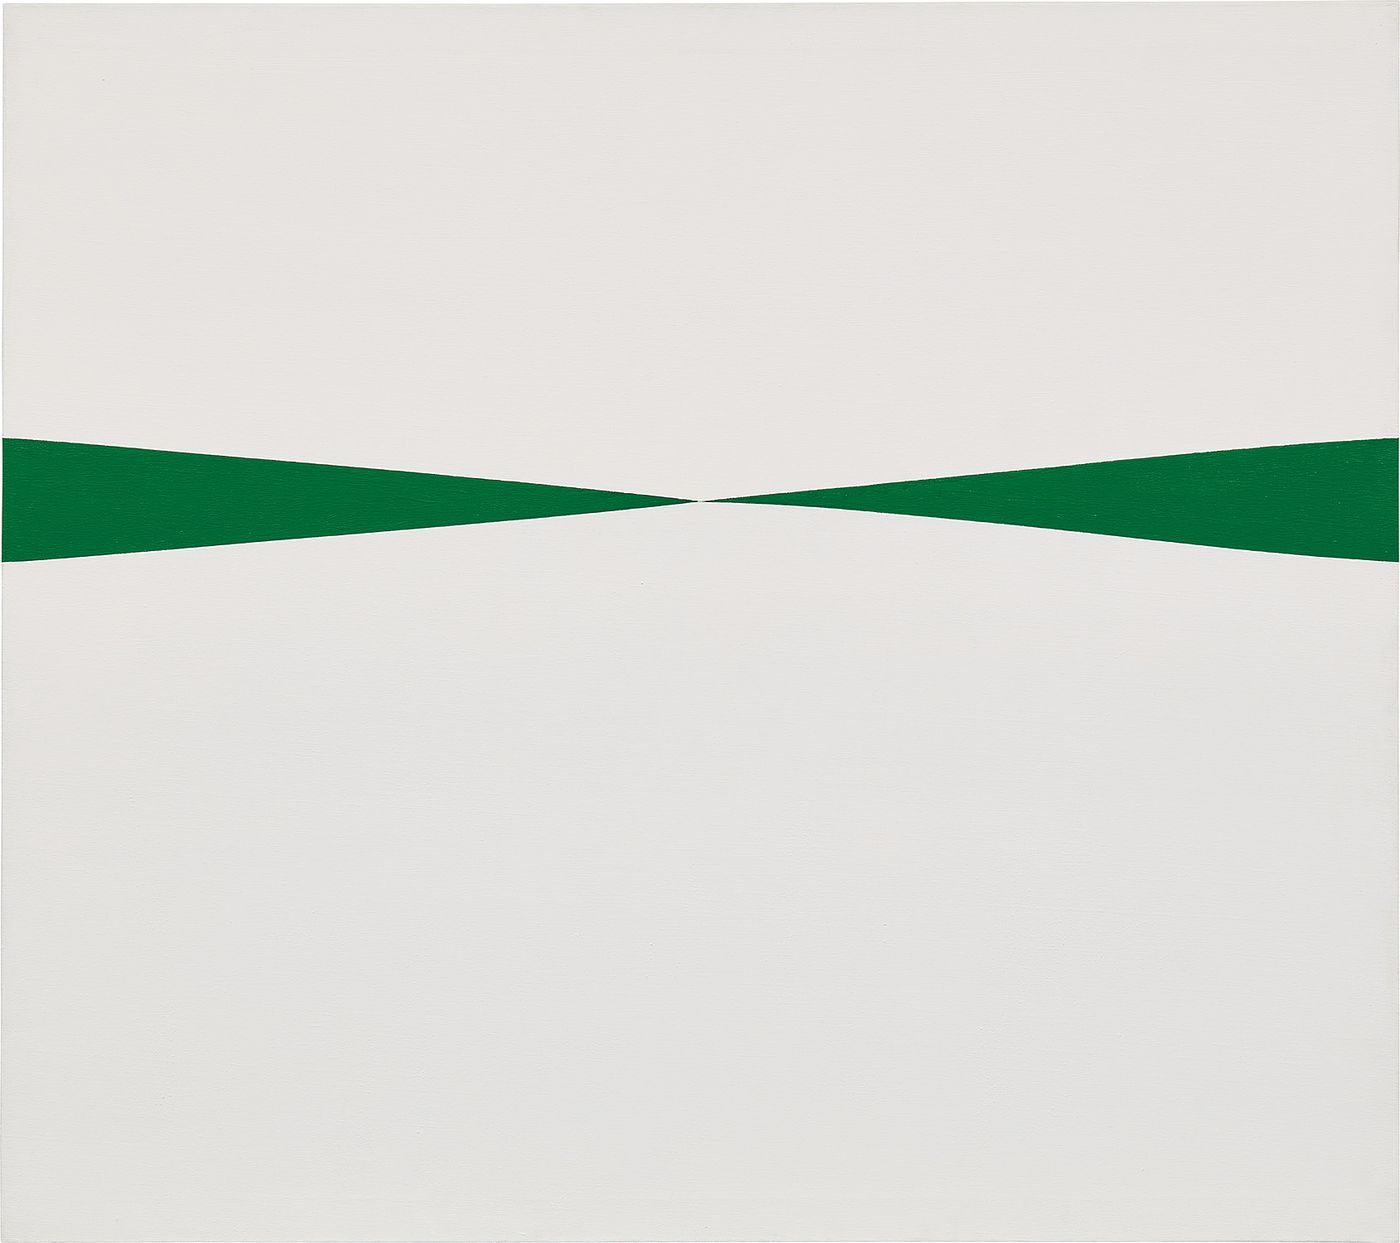 One of only 14 known versions of Carmen Herrera's 'Blanco y Verde' series, the work coming to auction this November remained in obscurity for over four decades, carefully selected by the artist to remain in her small home studio in New York.